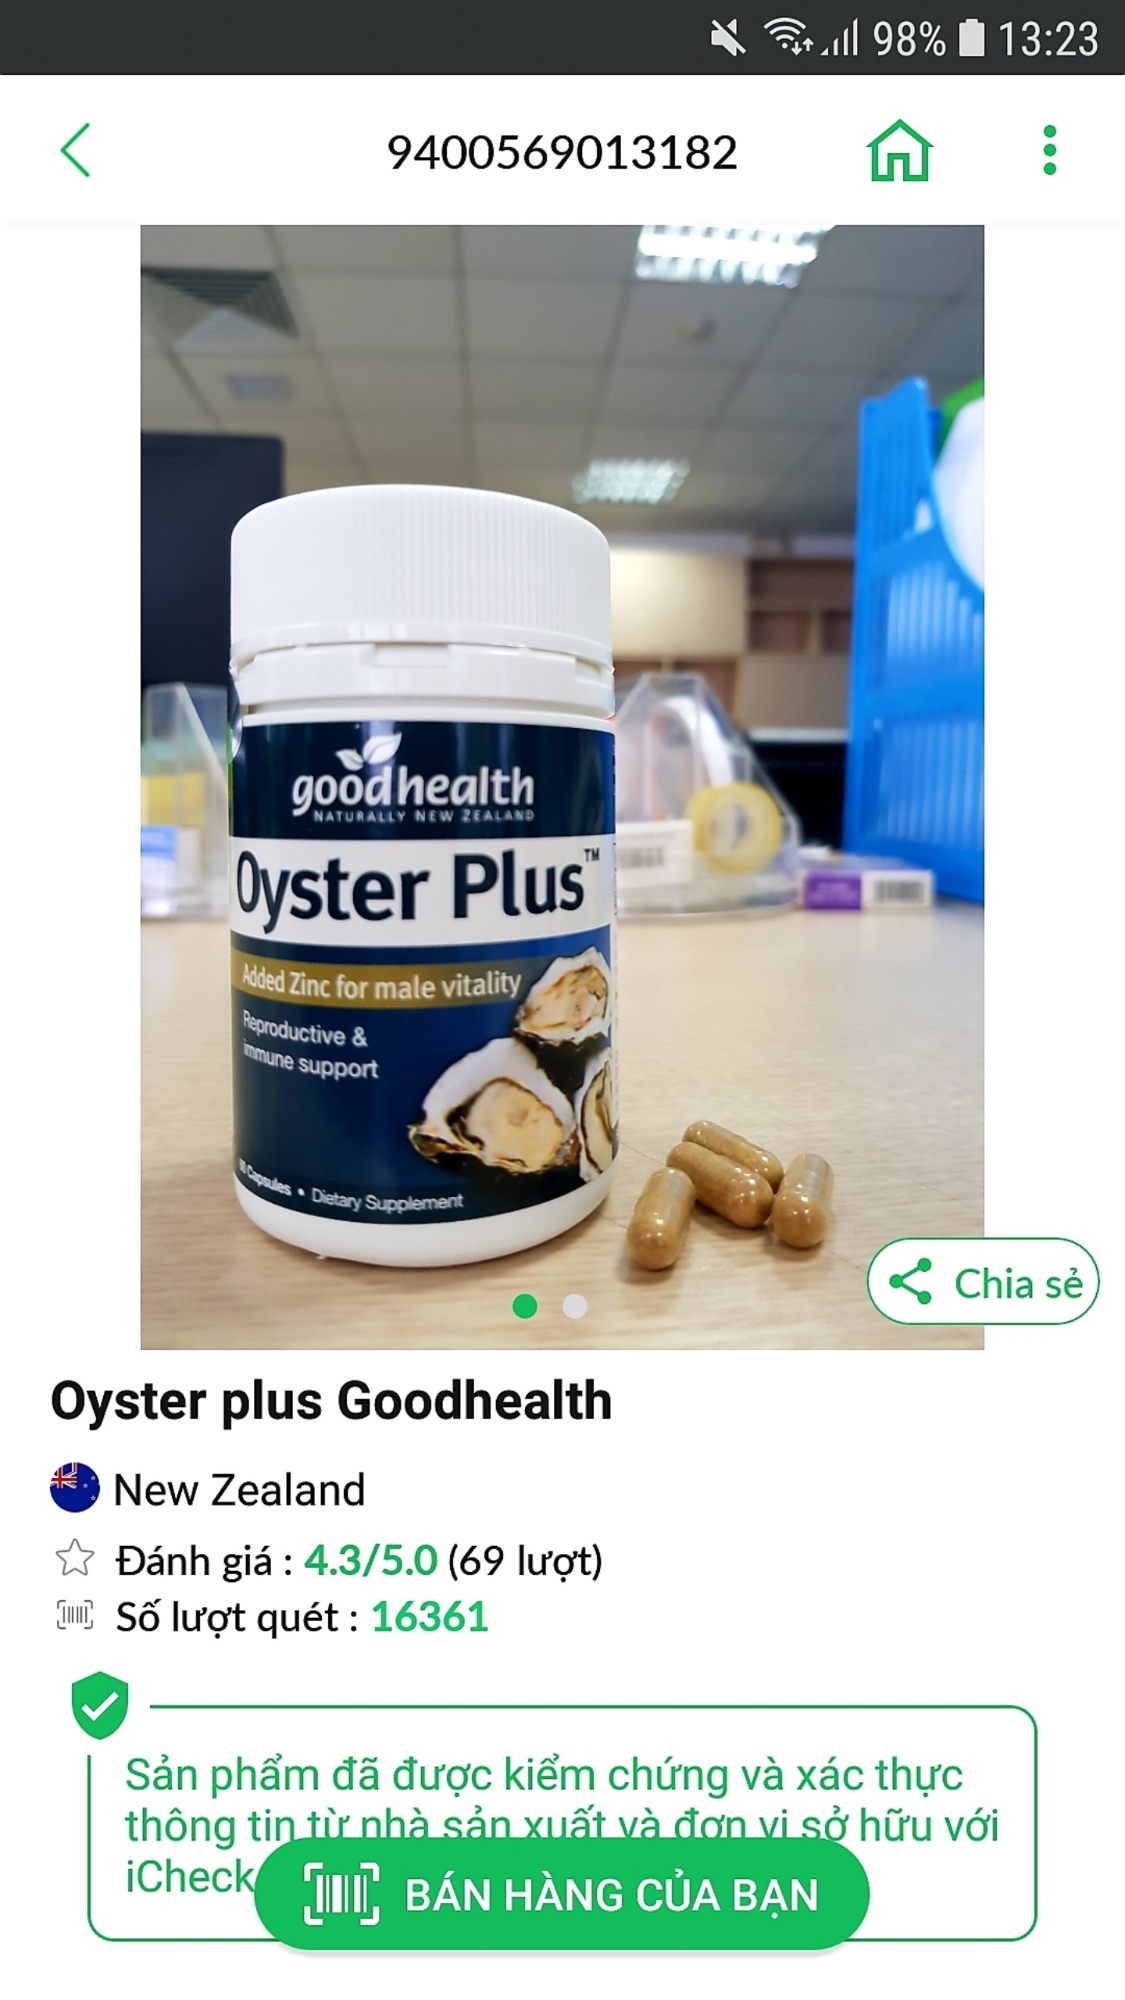 oyster plus nhathuocminhhuong,com